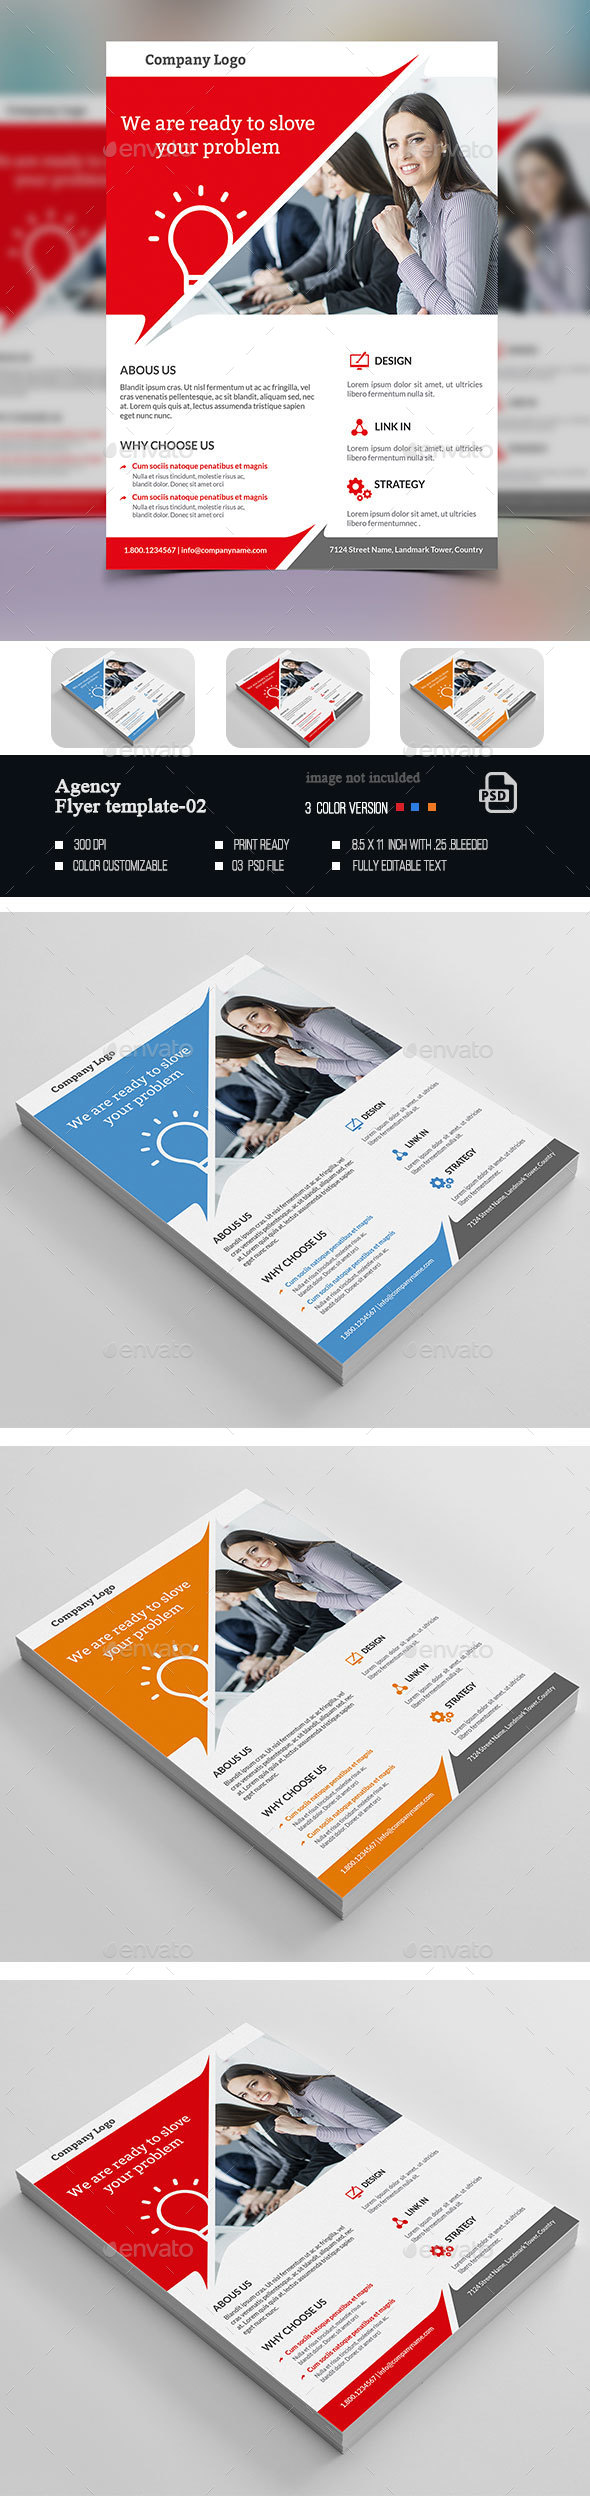 Agency Business Flyer-02 - Flyers Print Templates